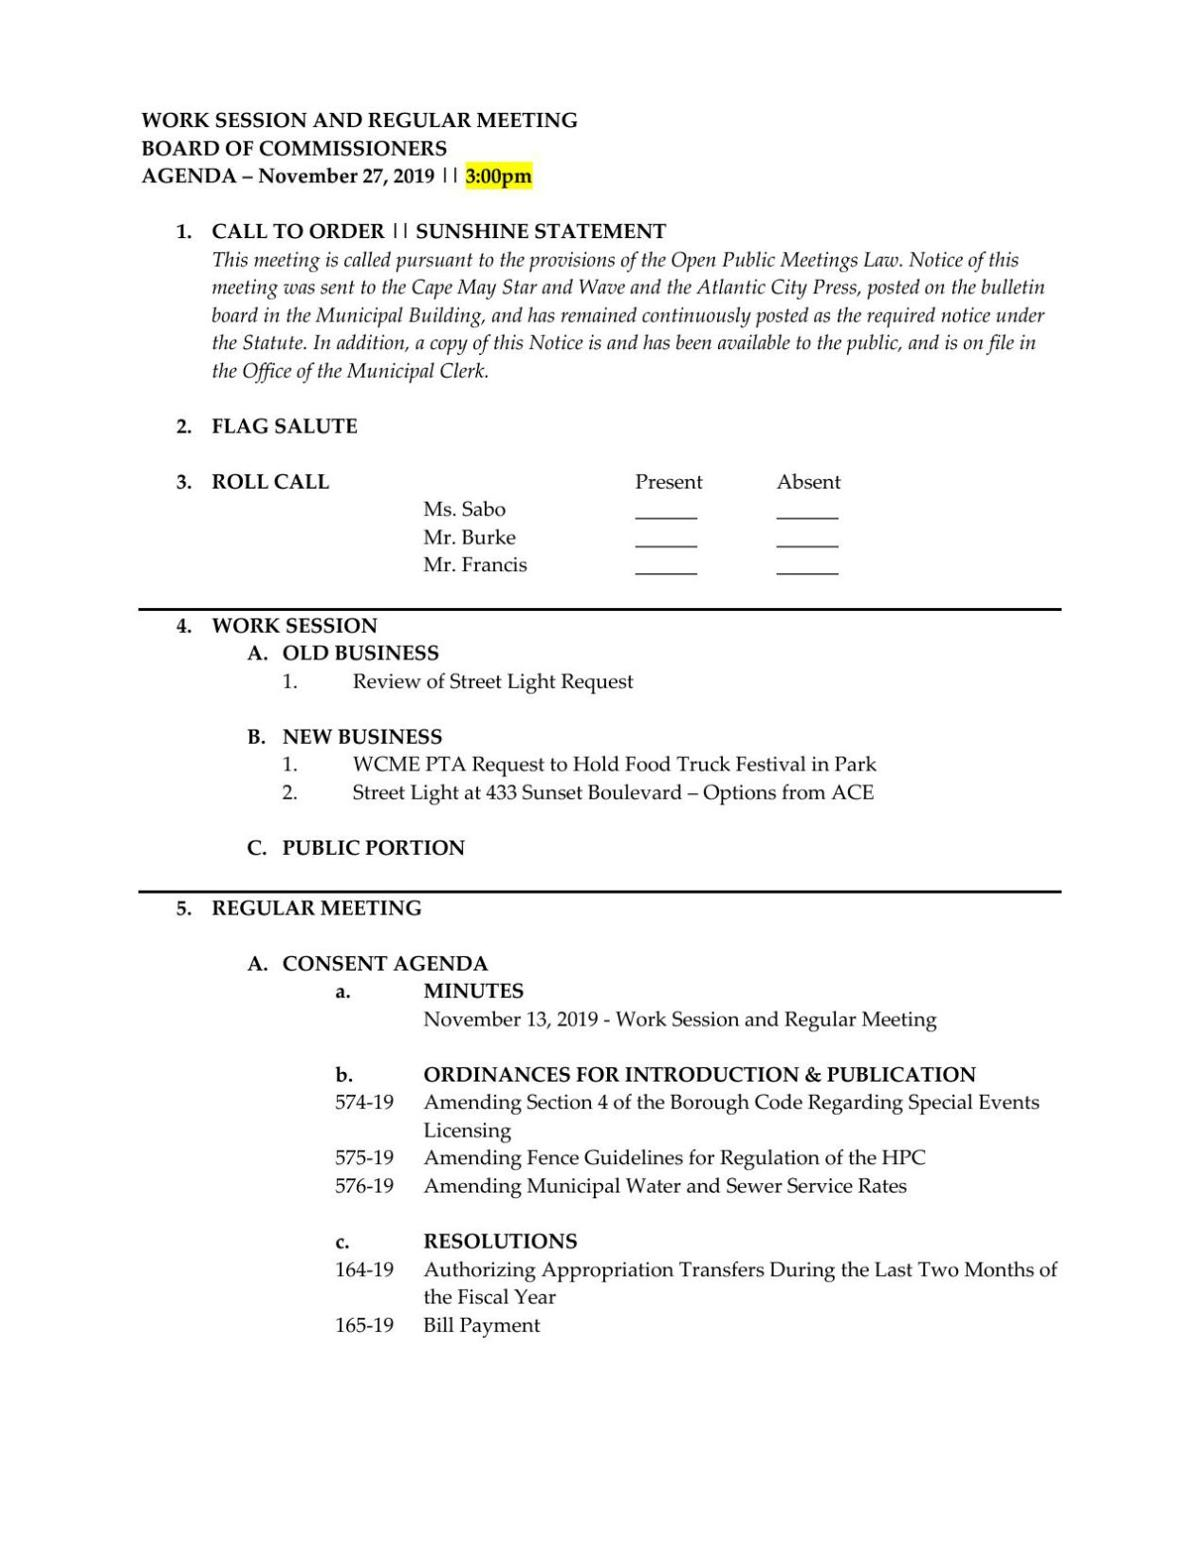 West Cape May Board of Commissioners Agenda Nov. 27, 2019